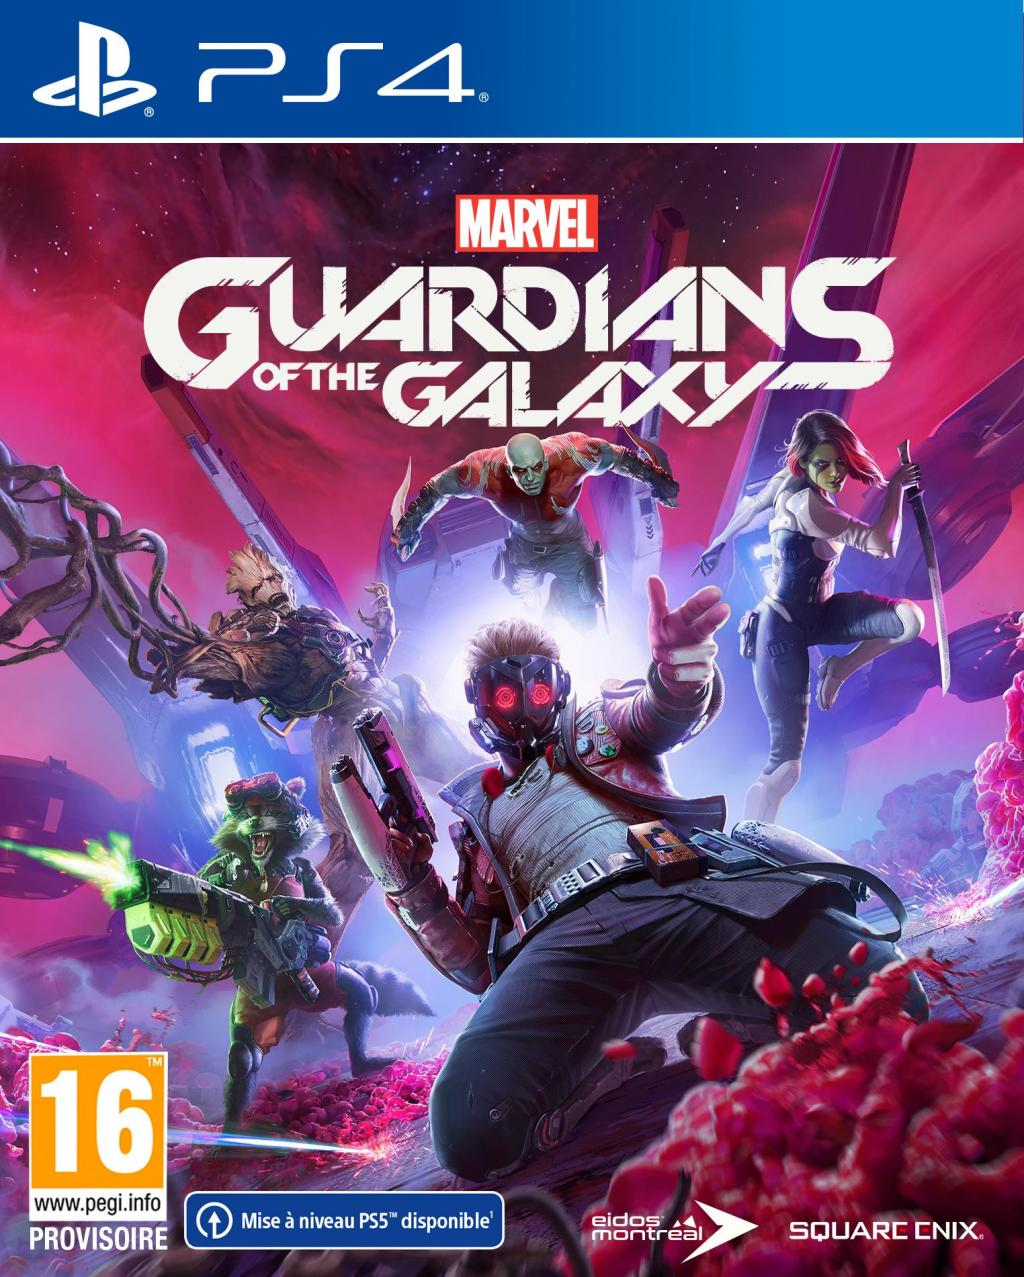 Marvel's Guardian of The Galaxy - Upgrade PS5 inclus_1